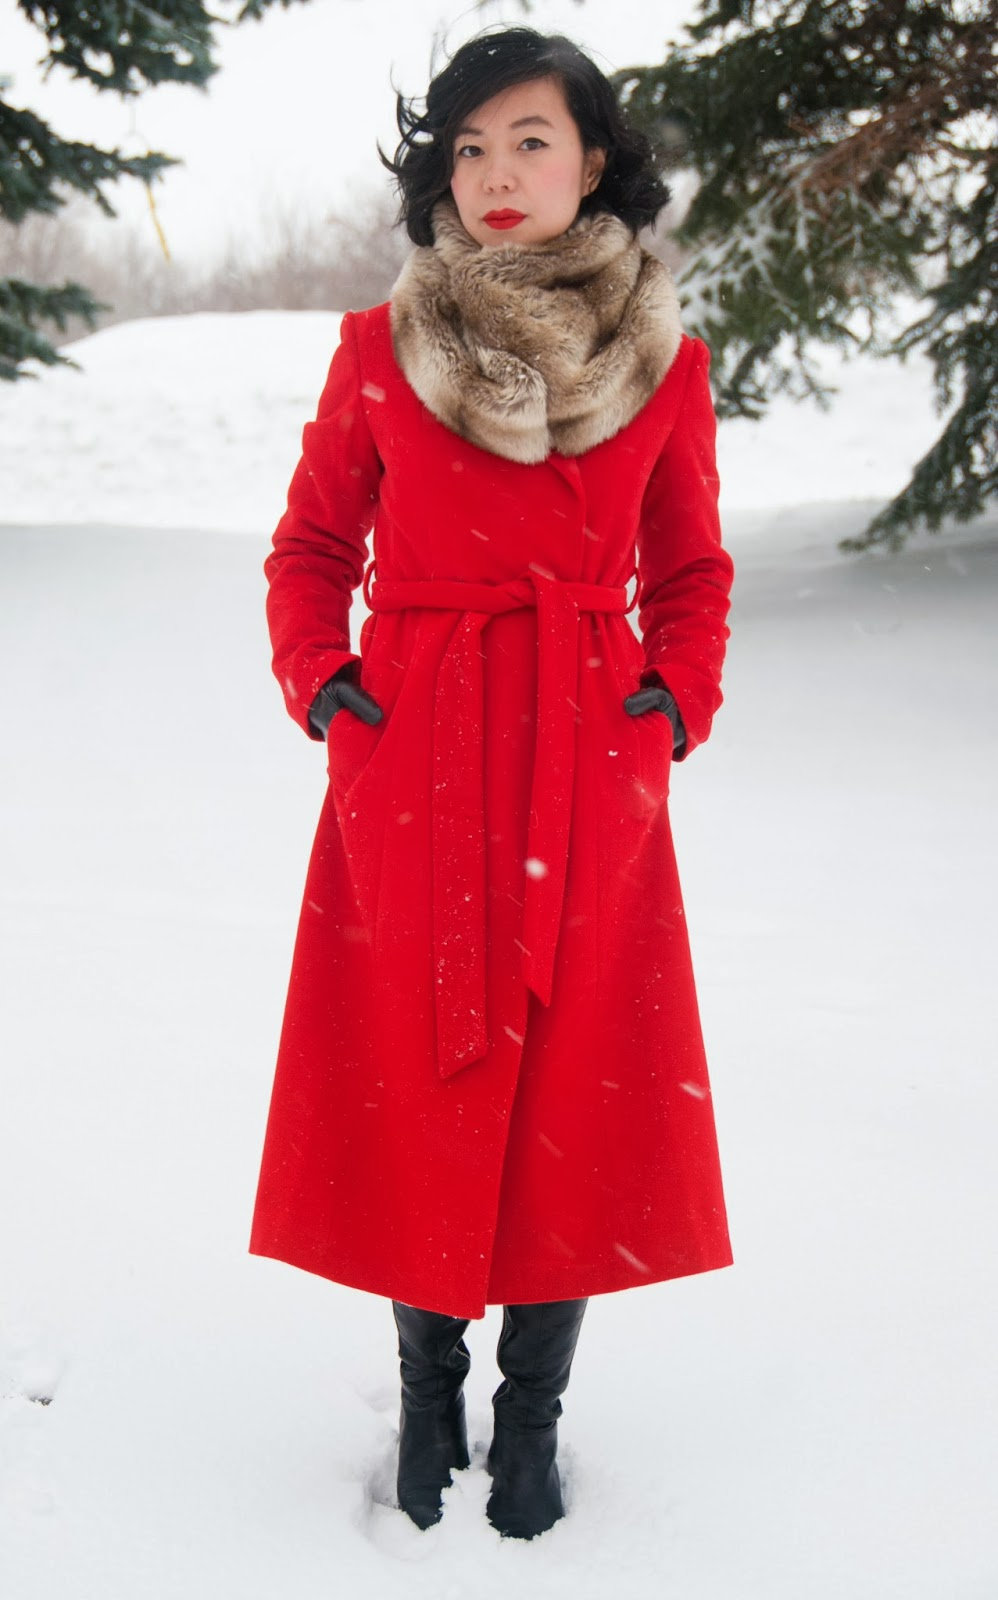 Montreal Fashion Blog: Bouquet of Frocks: Walking In A Winter ...